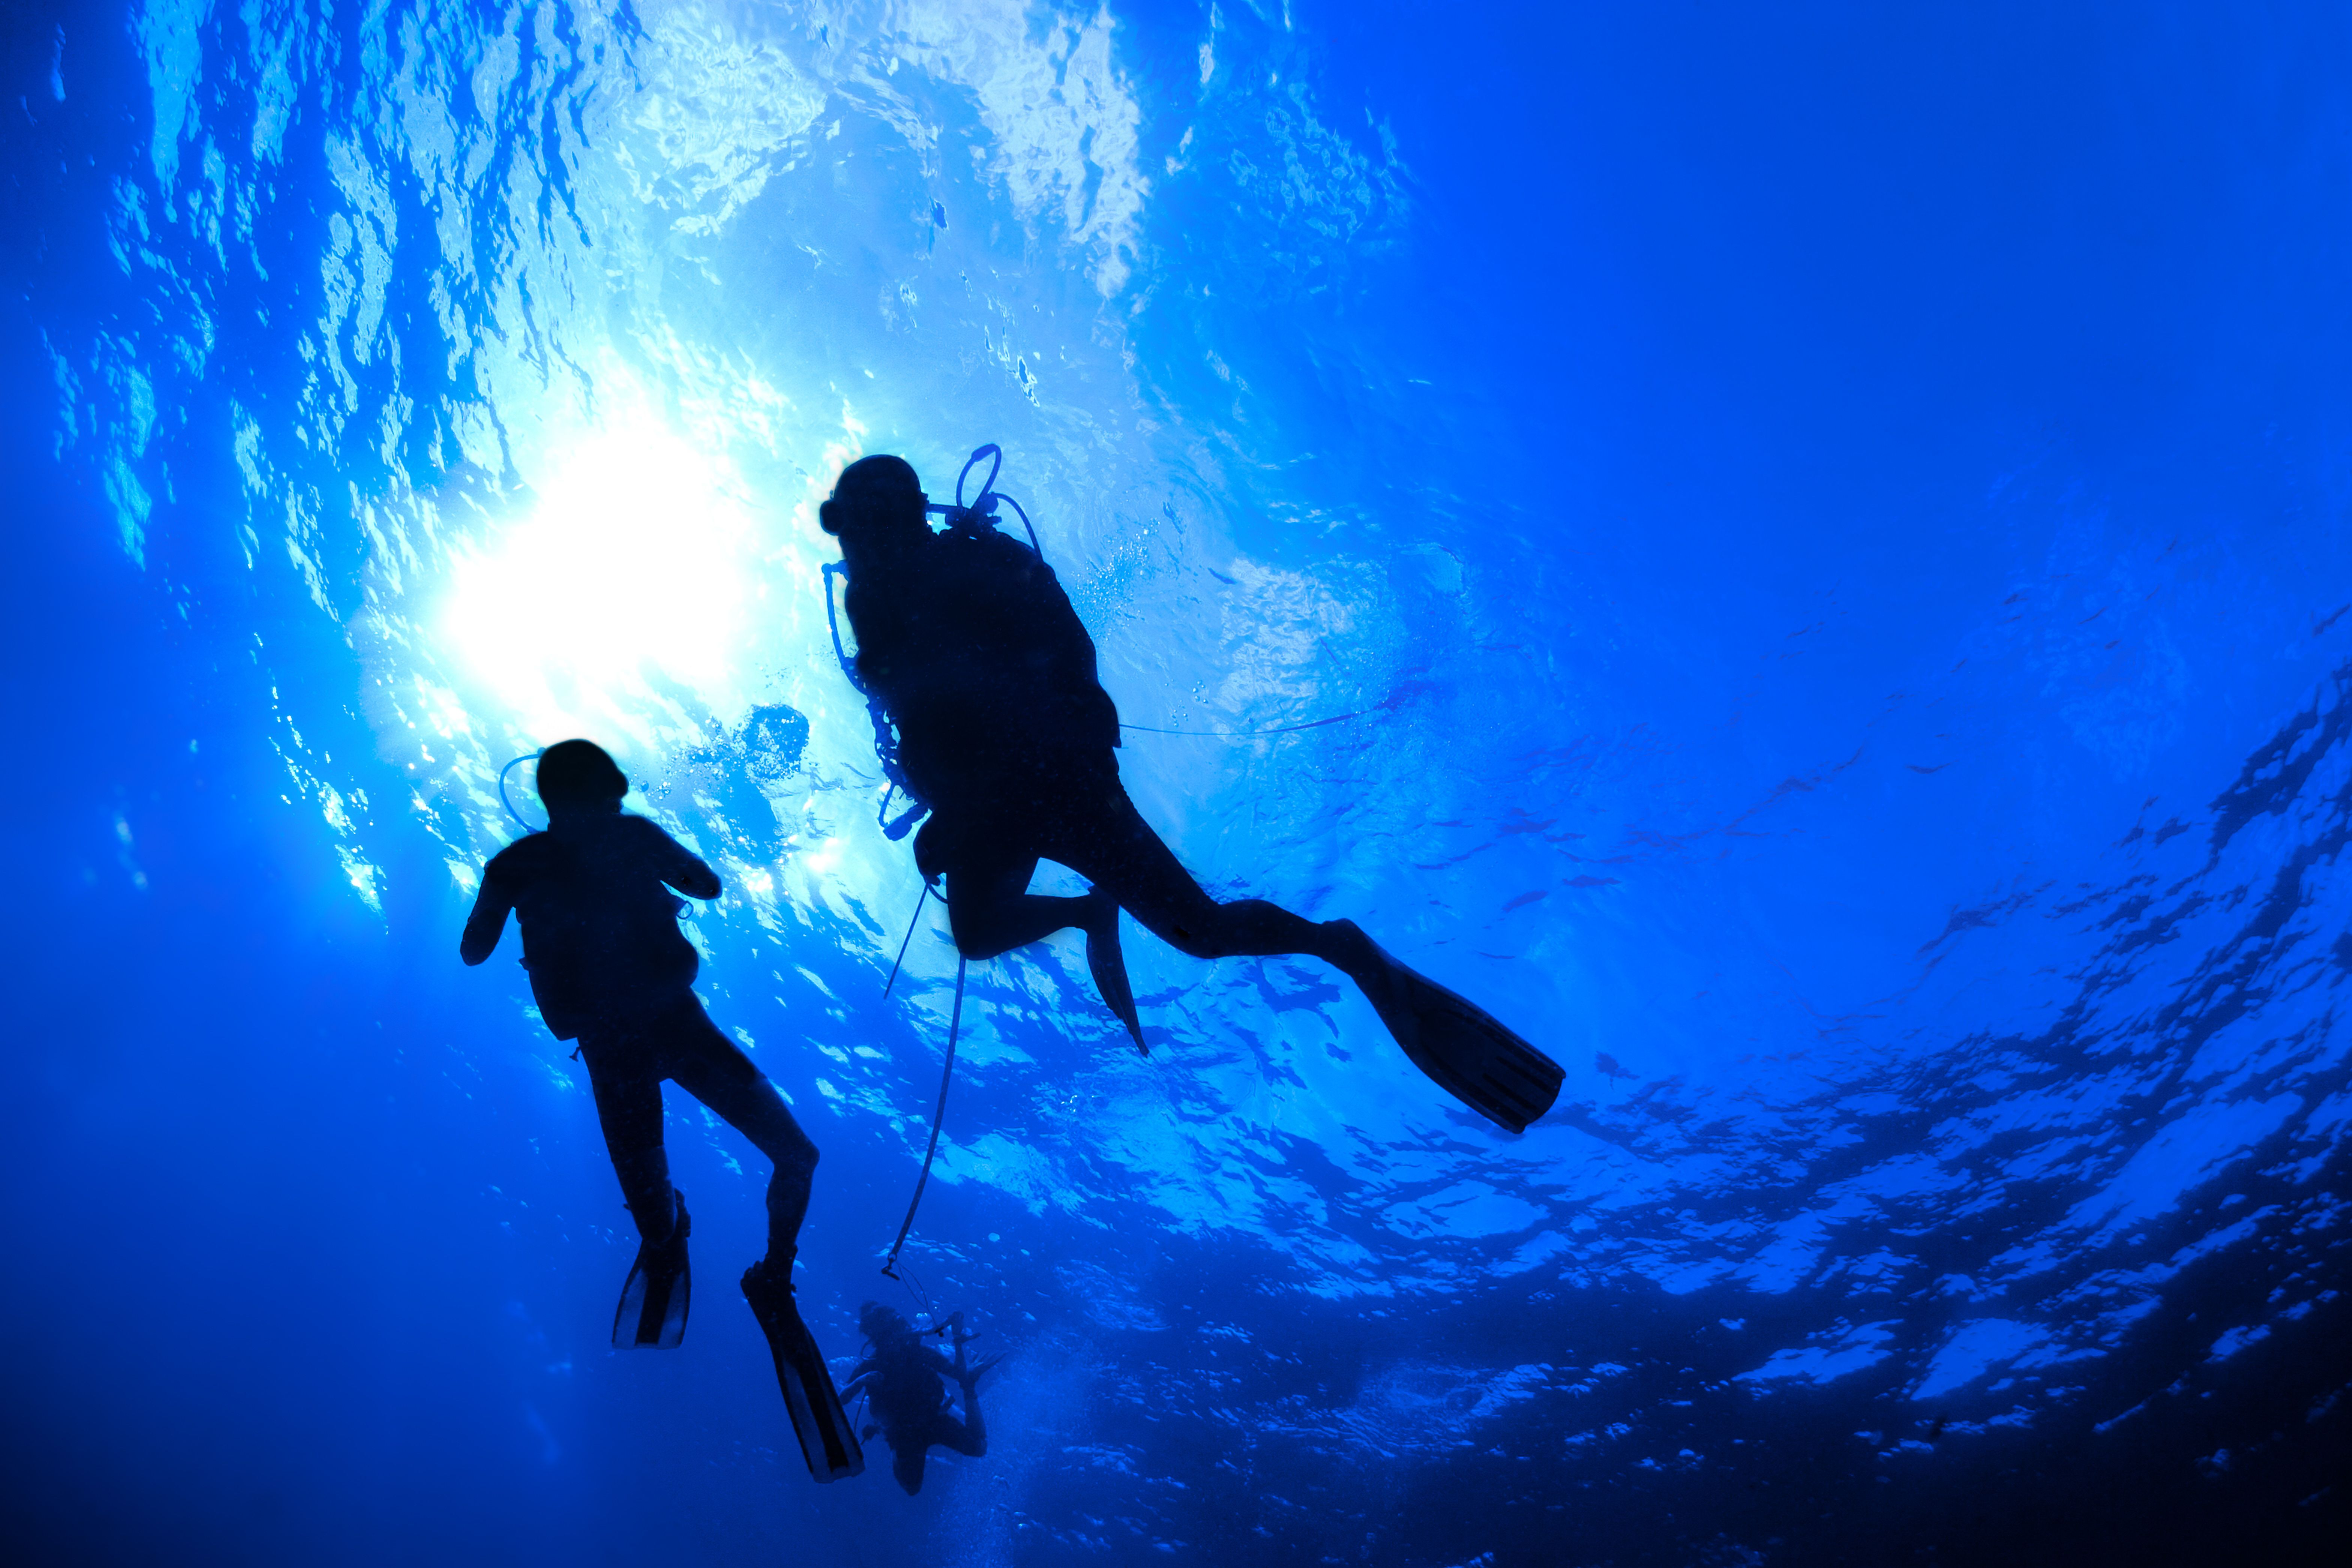 Check out this great shot of divers underwater